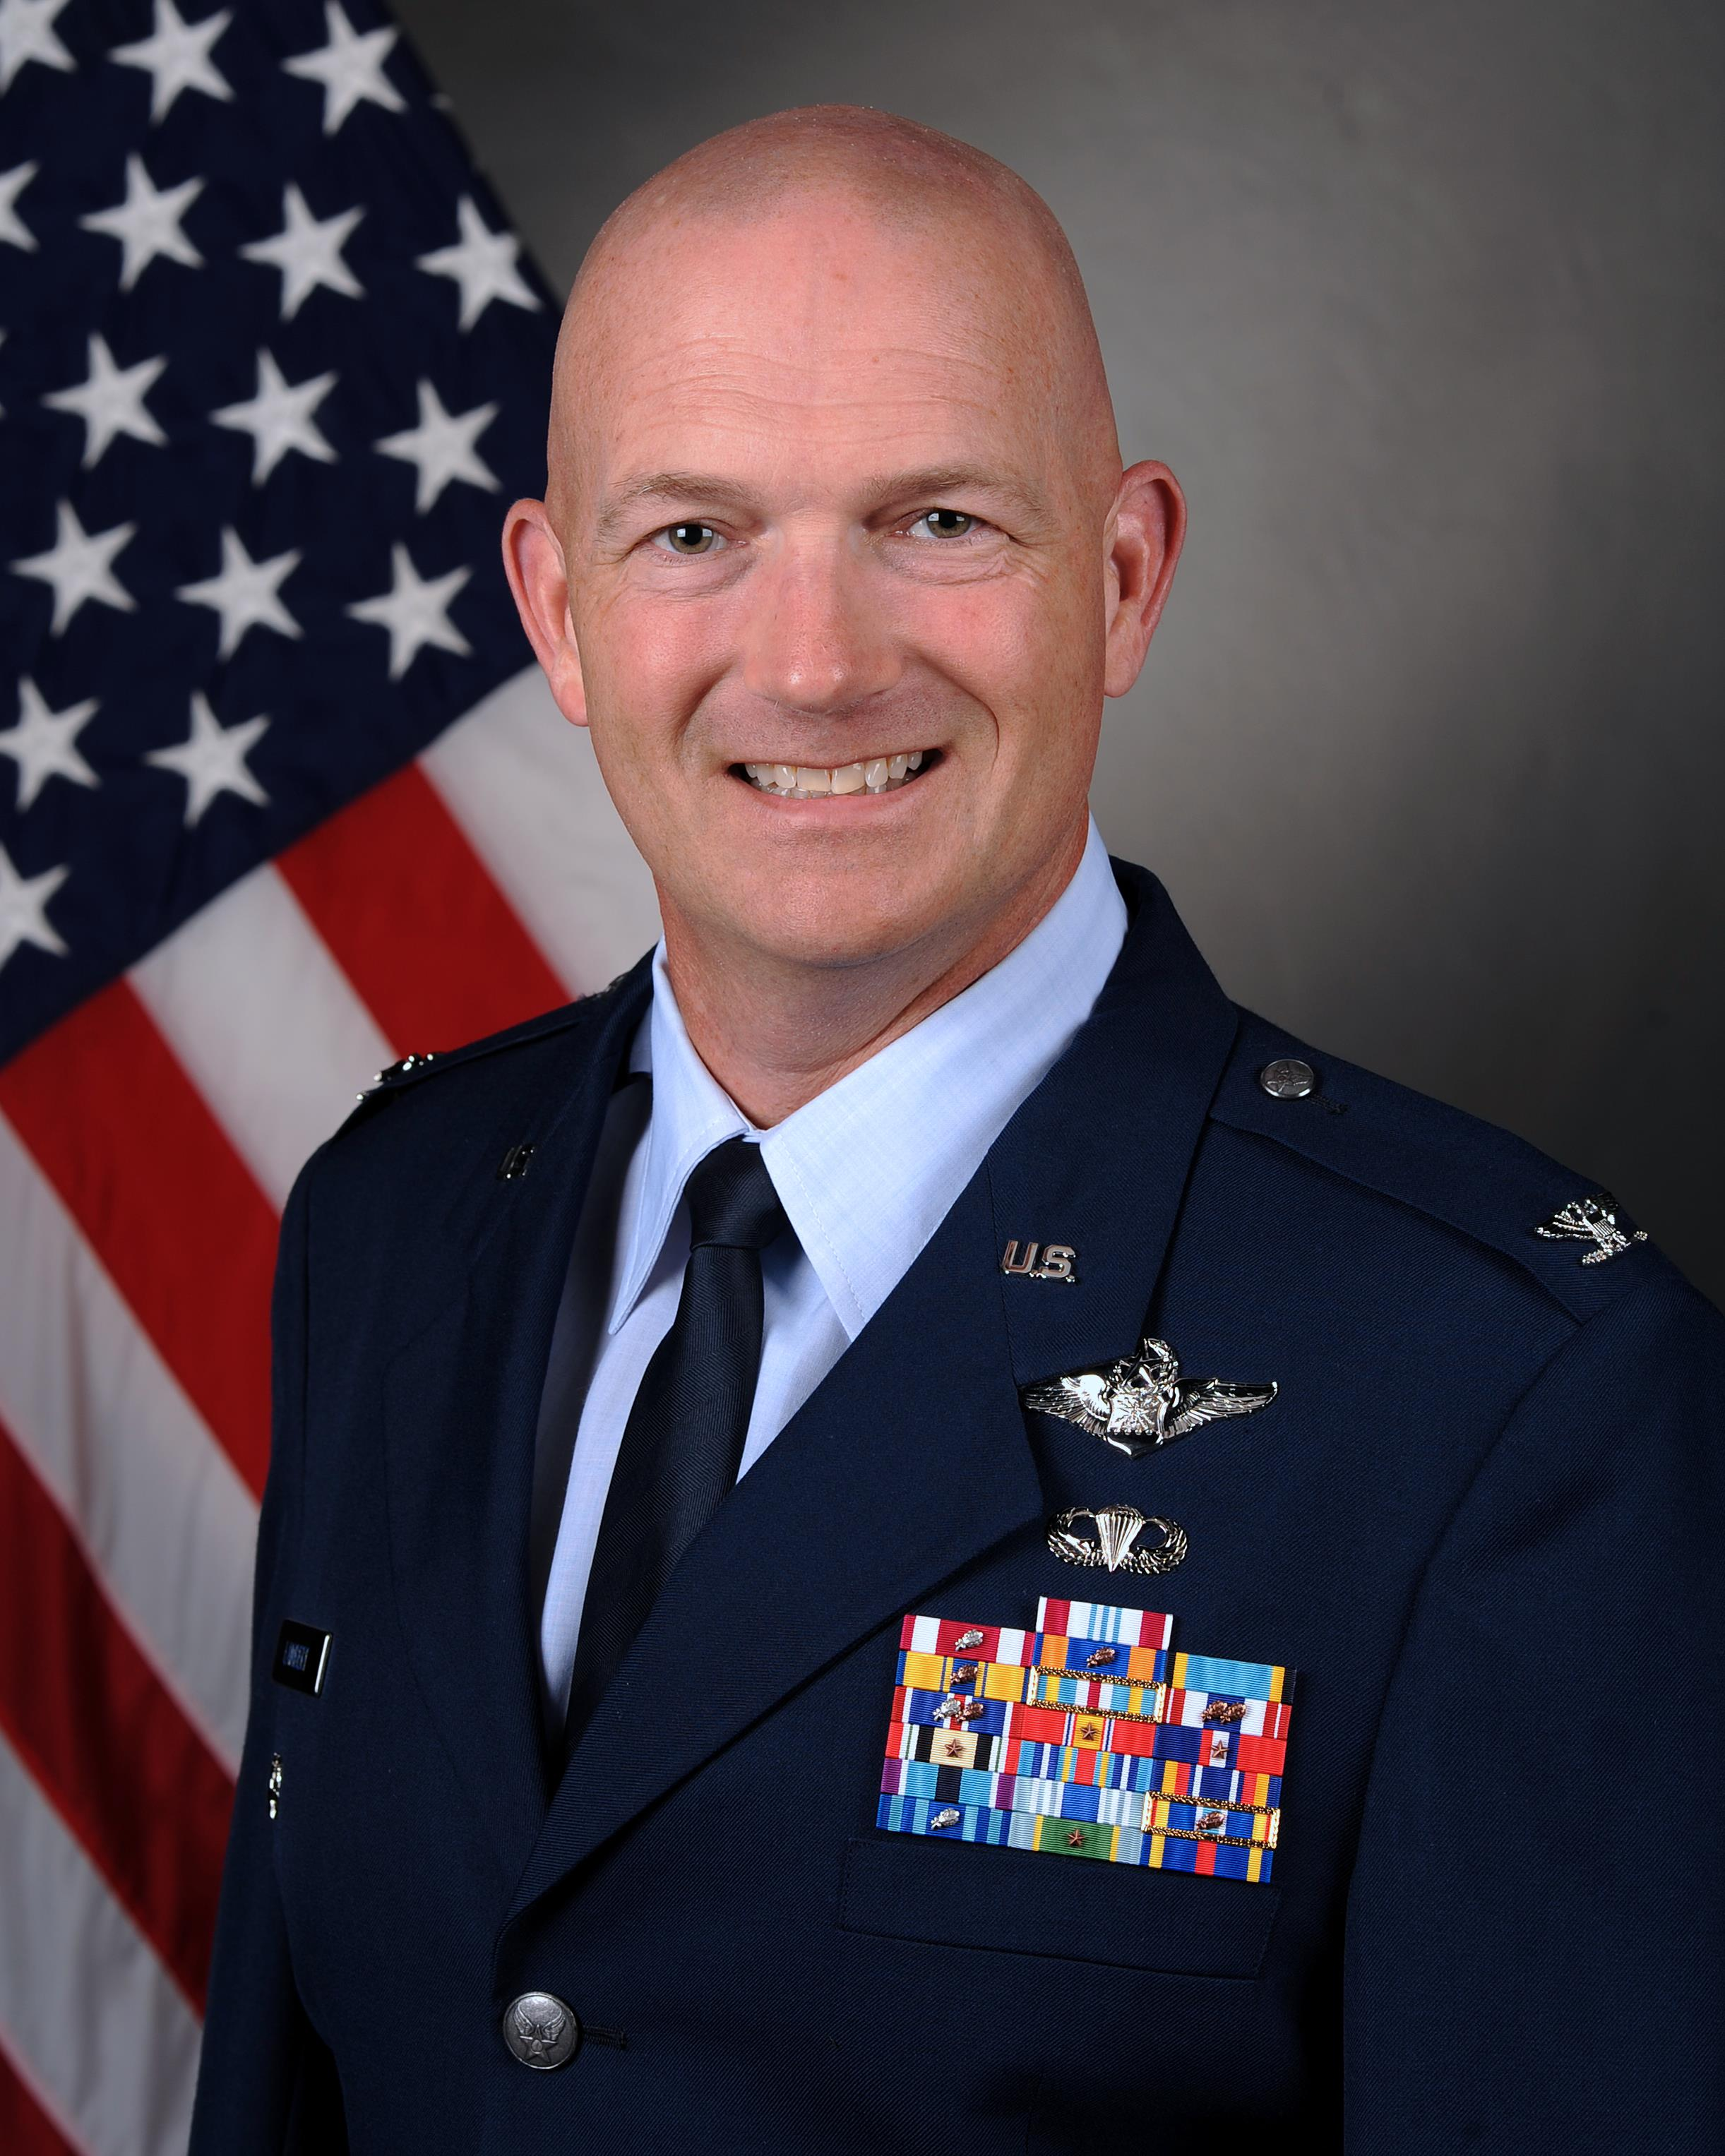 Bald white man in Air Force Blues standing in front of Red, White and Blue American Flag